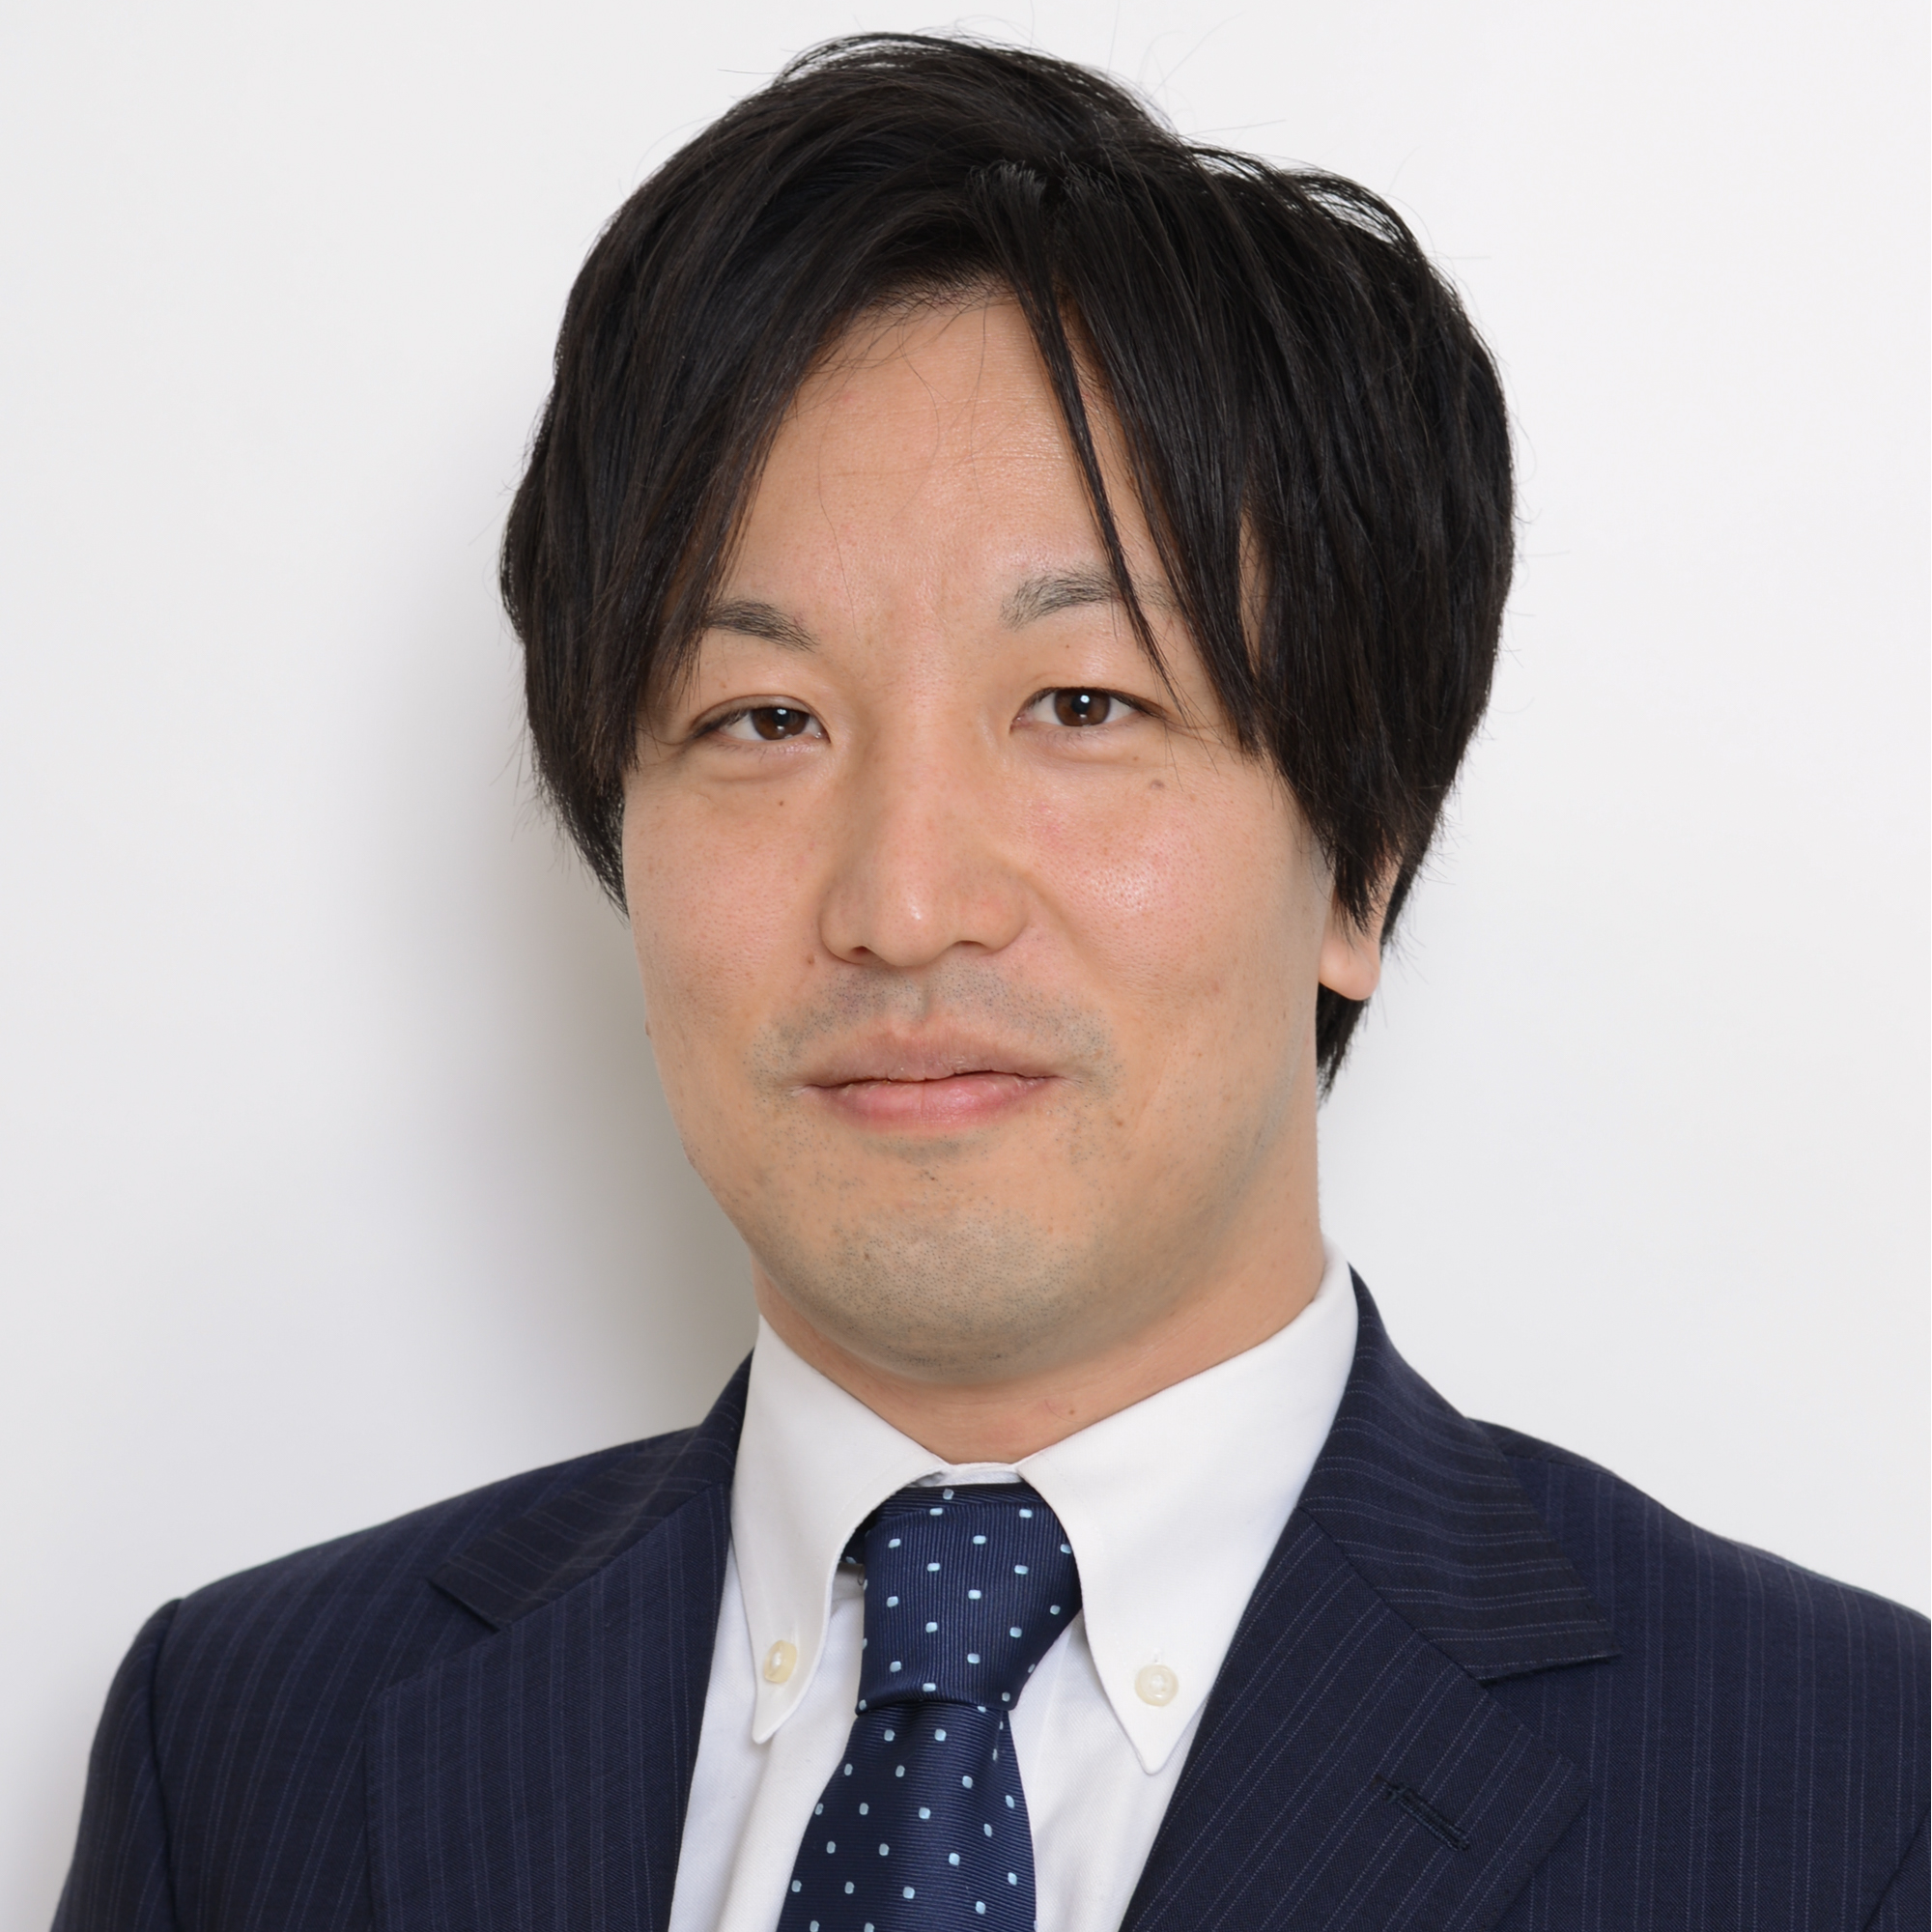 Mr Yuya Nakamura, President & CEO at Axelspace Corporation